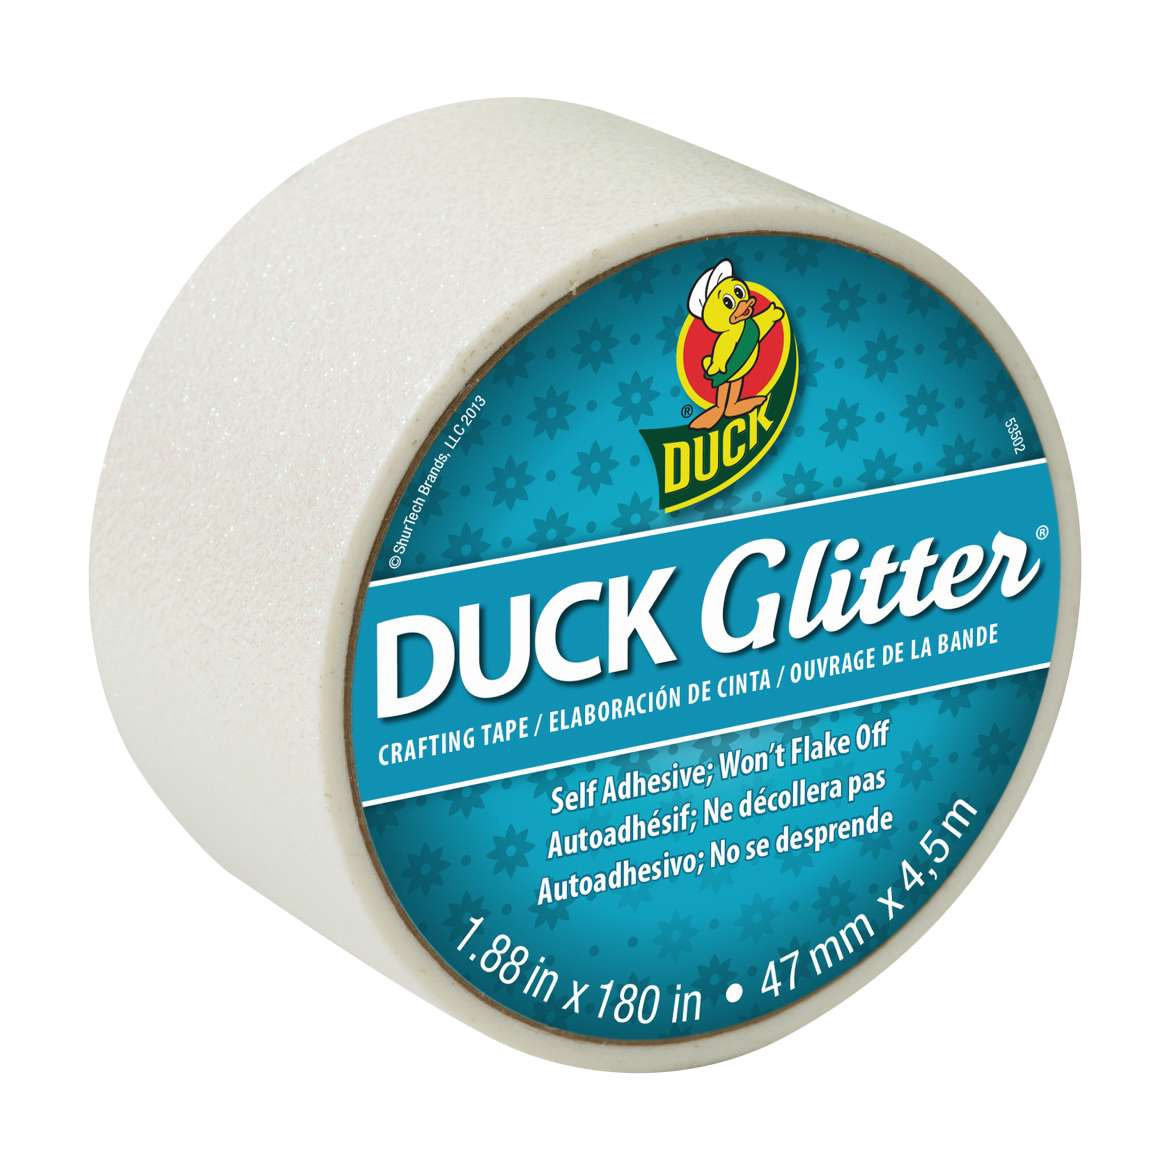 Duck Glitter® Crafting Tape Image